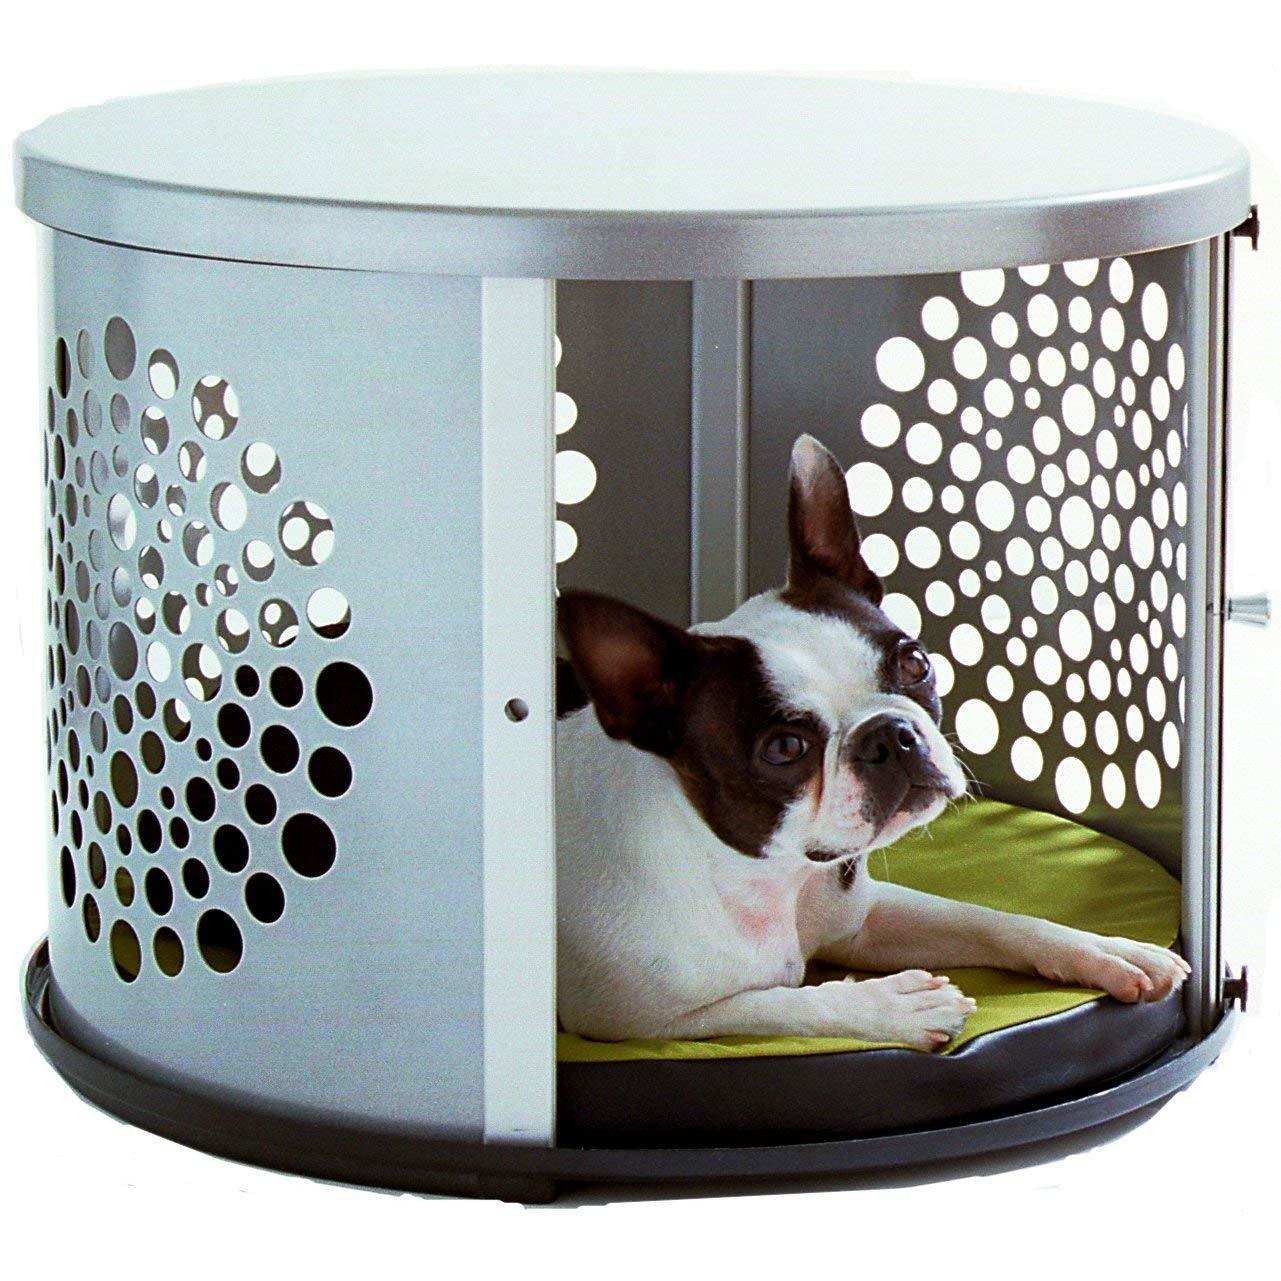 Things To Consider Choosing Decorative Dog Crates for Your Pet